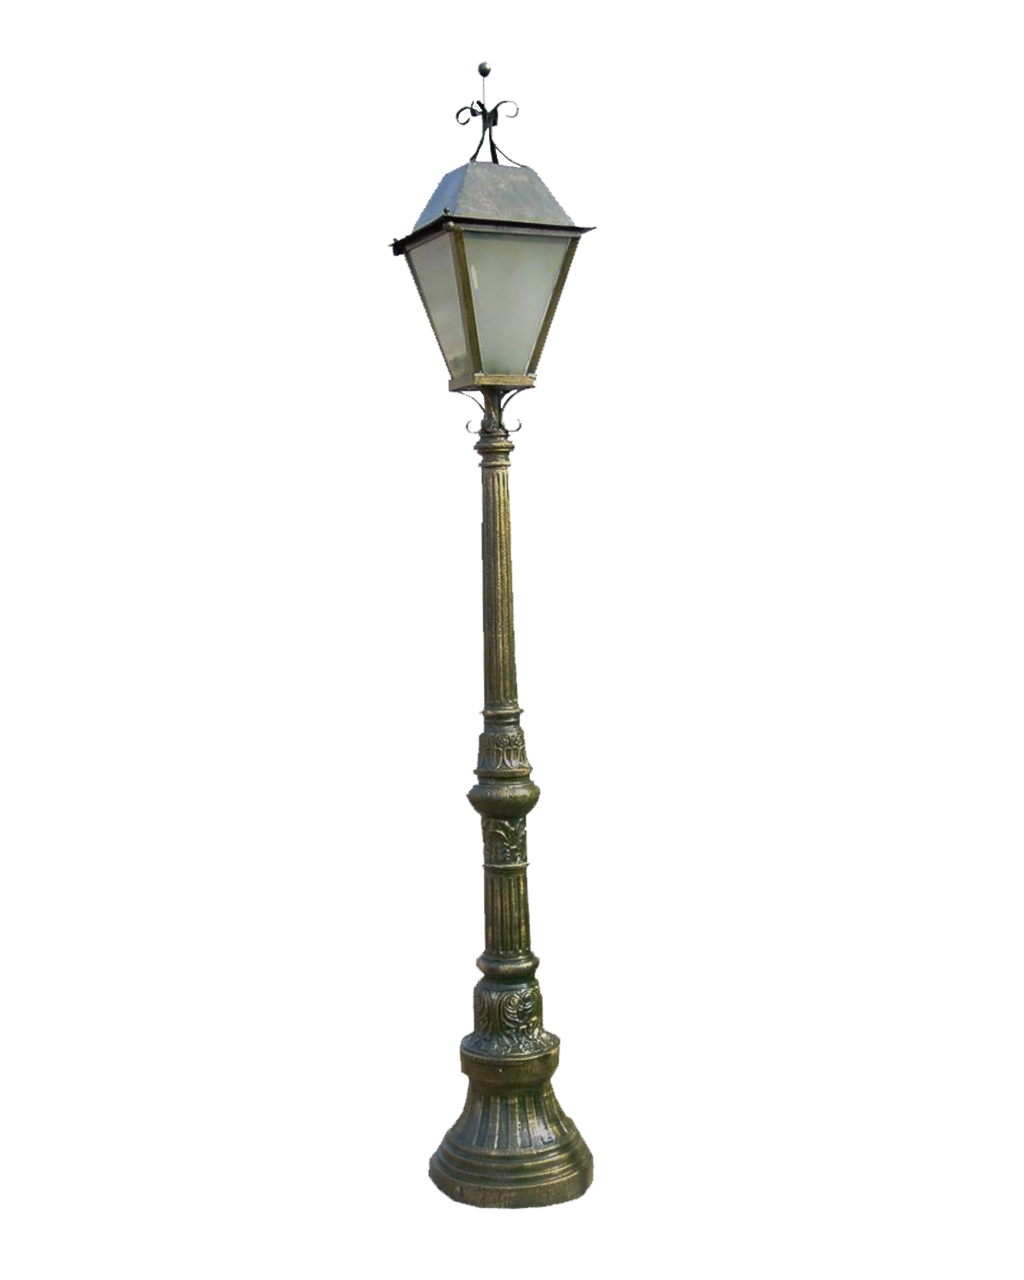 Png Lamp 22 by Moonglowlilly